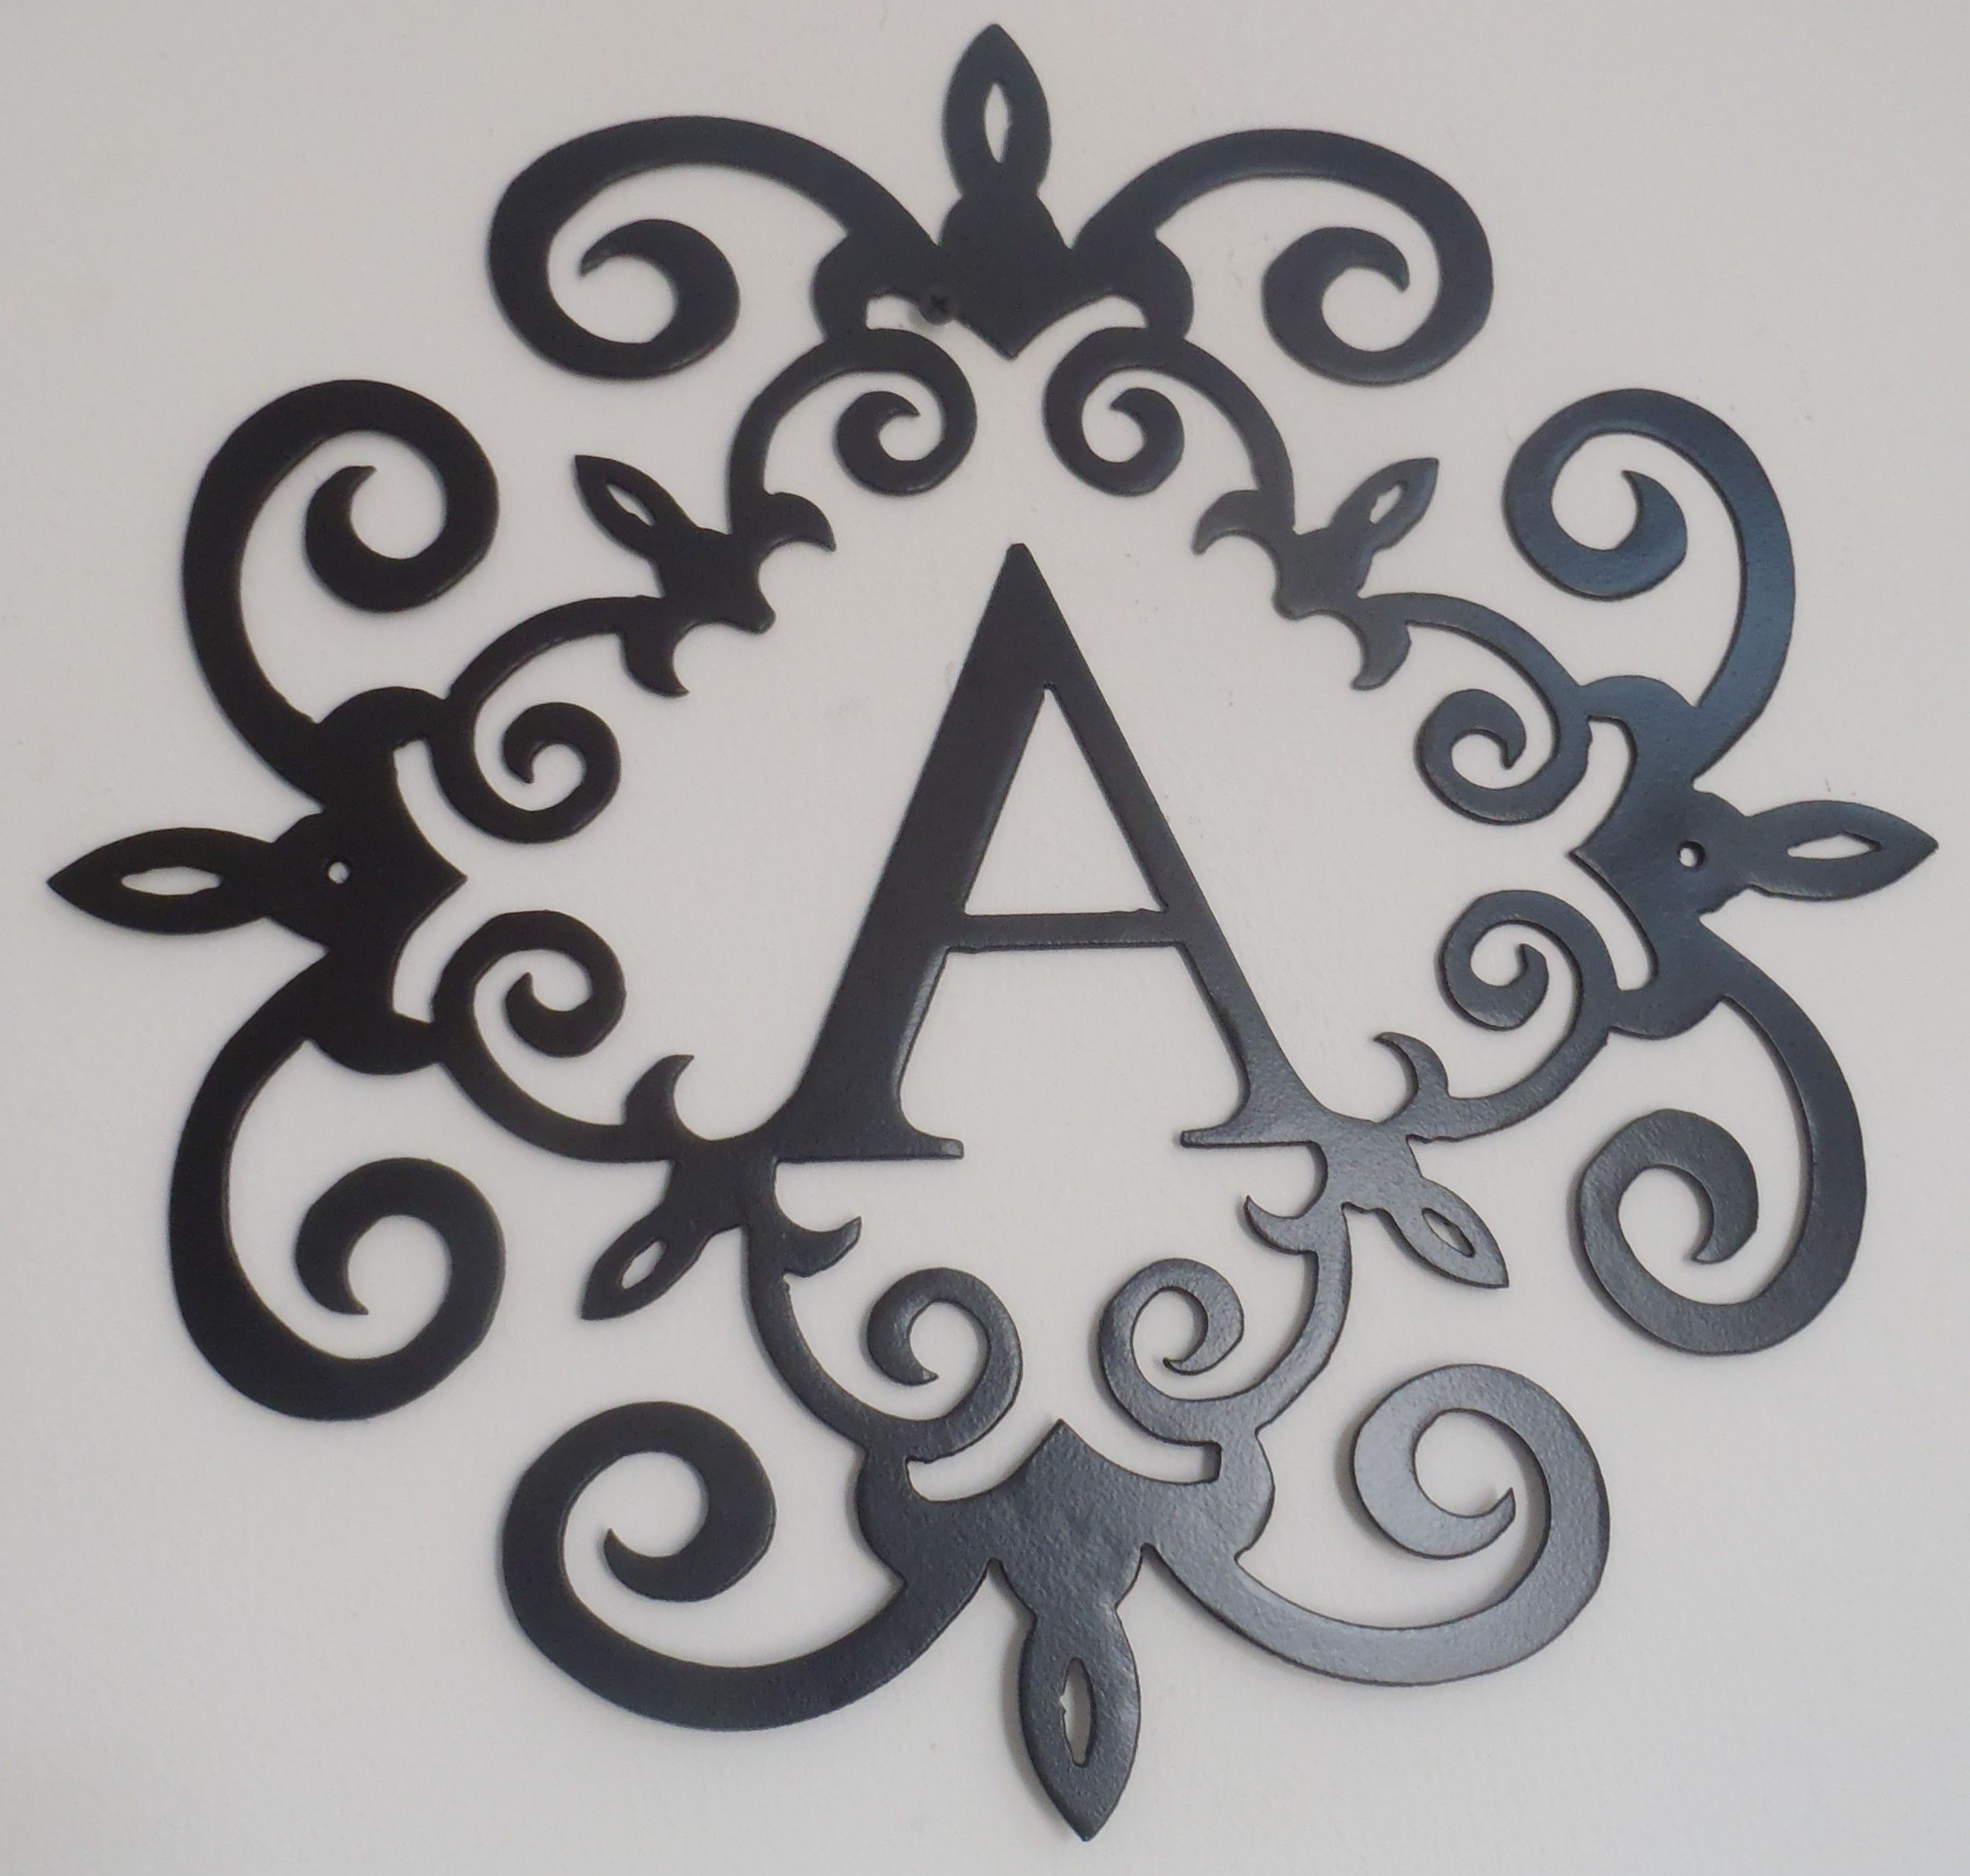 Well Known Family Initial, Monogram Inside A Metal Scroll With A Letter, Wall Inside Metal Scroll Wall Art (View 17 of 20)